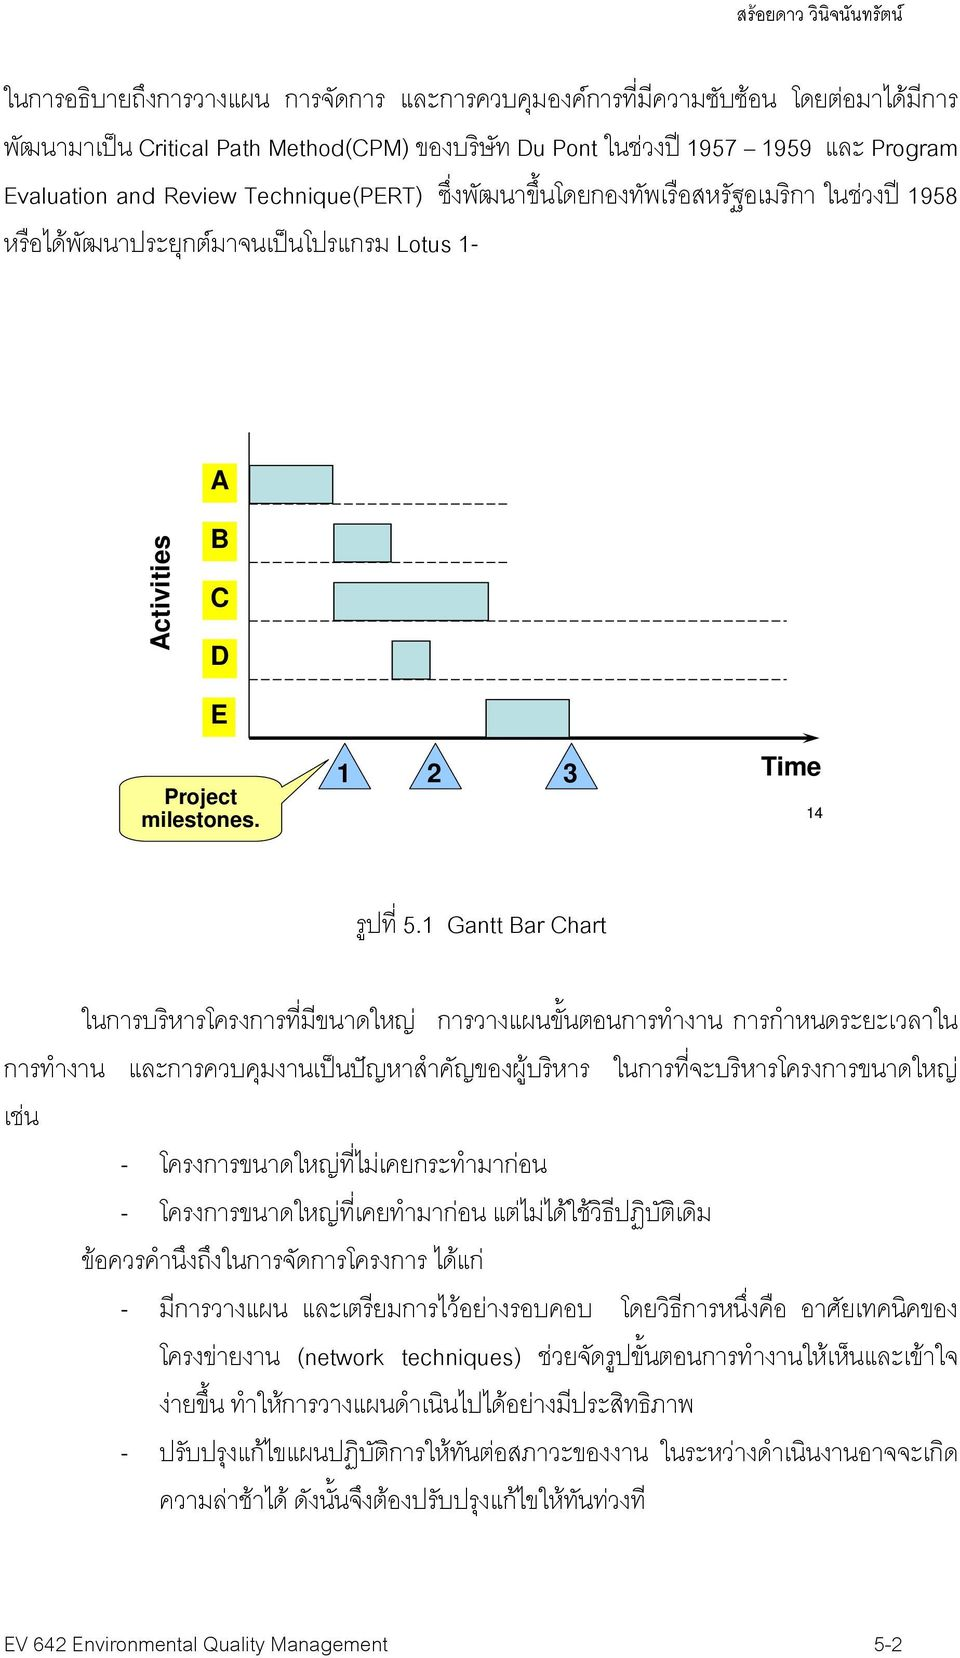 sequence of each activity. E 1 2 3 Time Project EV 642 EQM 2/48 milestones. ผศ.ดร.สร อยดาว ว น จน นทร ตน 14 ร ปท 5.